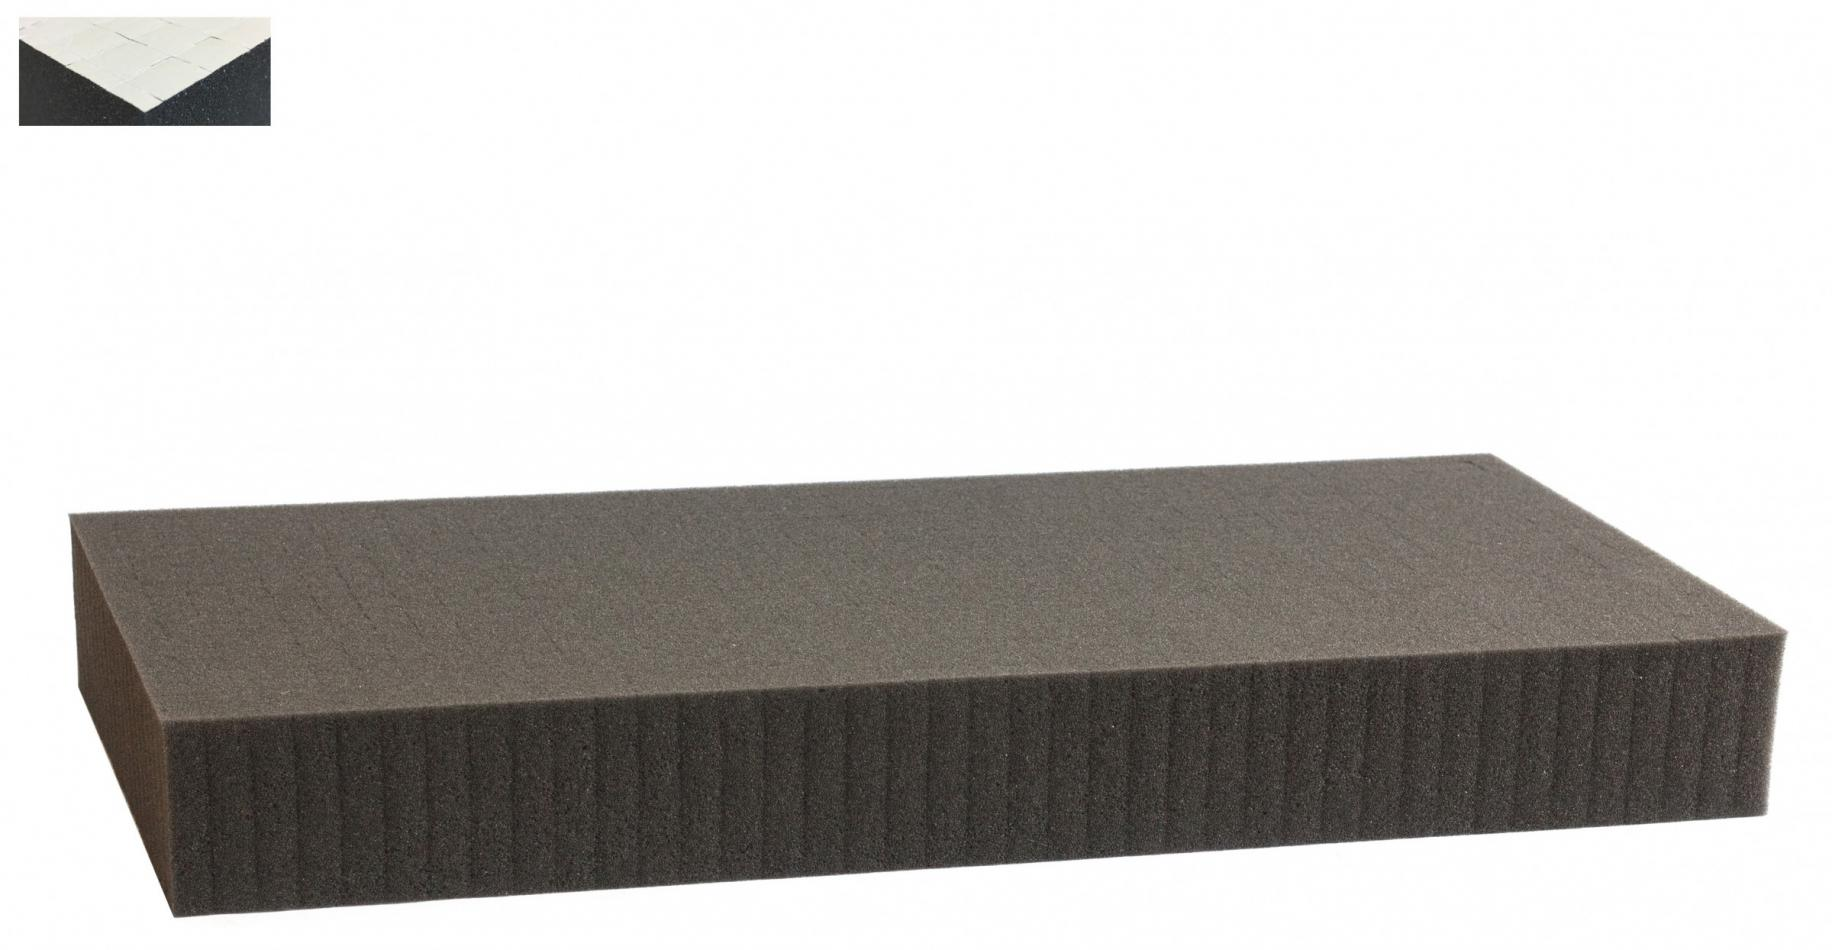 1000 mm x 500 mm x 60 mm self adhesive - Raster 15 mm - Pick and Pluck / Pre-Cubed foam tray